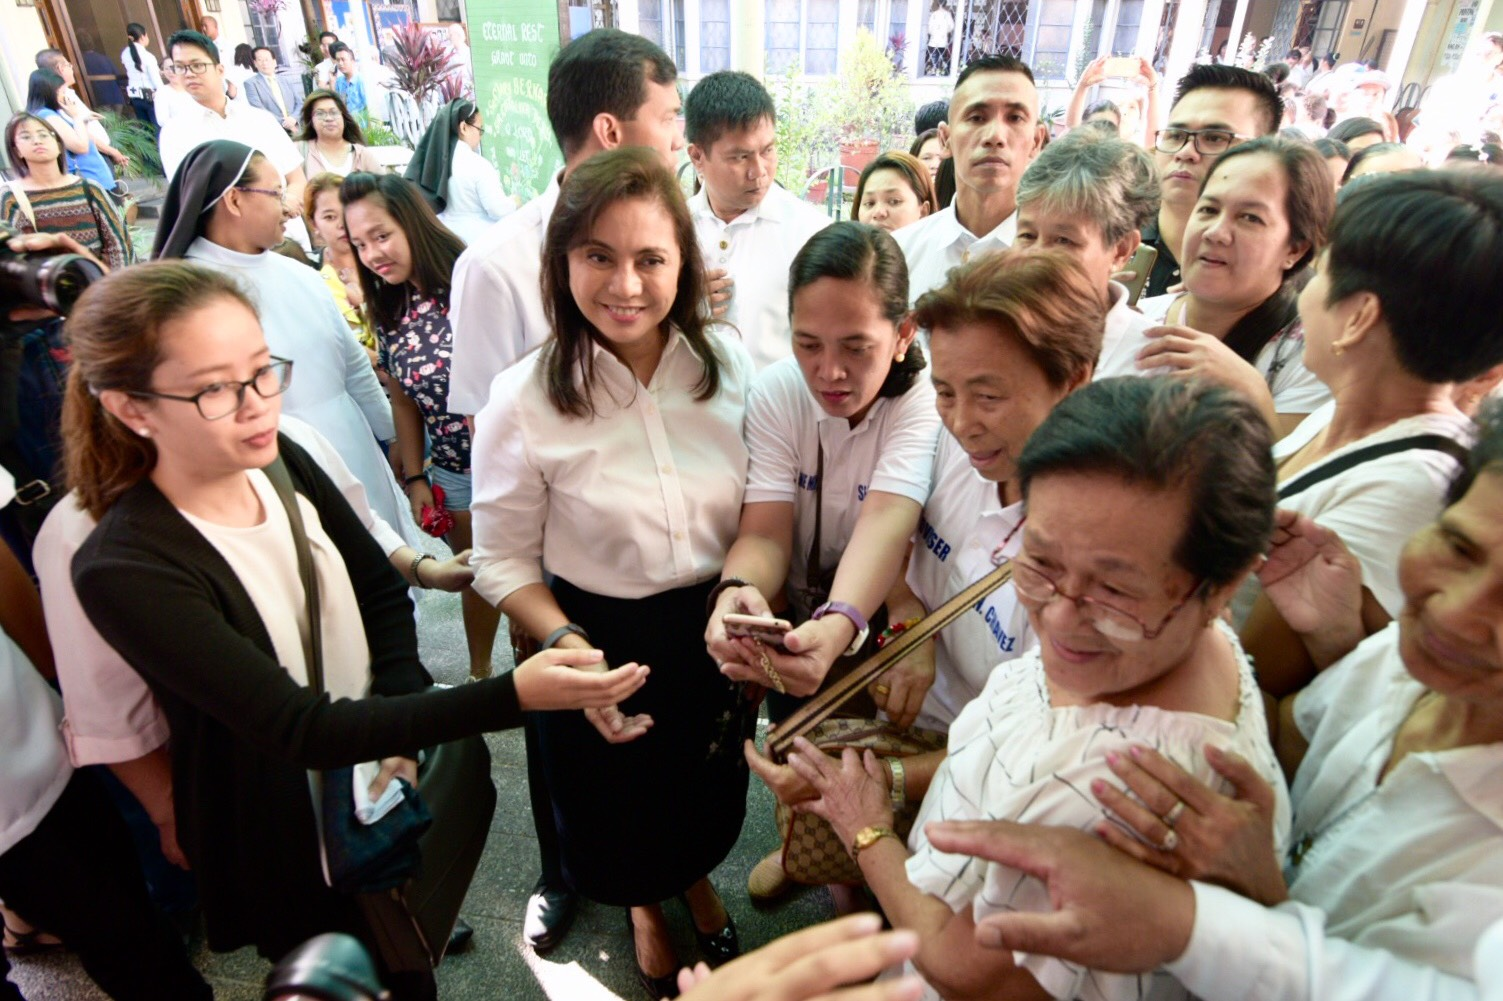 SUPPORT SYSTEM. Vice President Leni Robredo greets her supporters after the Mass. Photo by LeAnne Jazul/Rappler